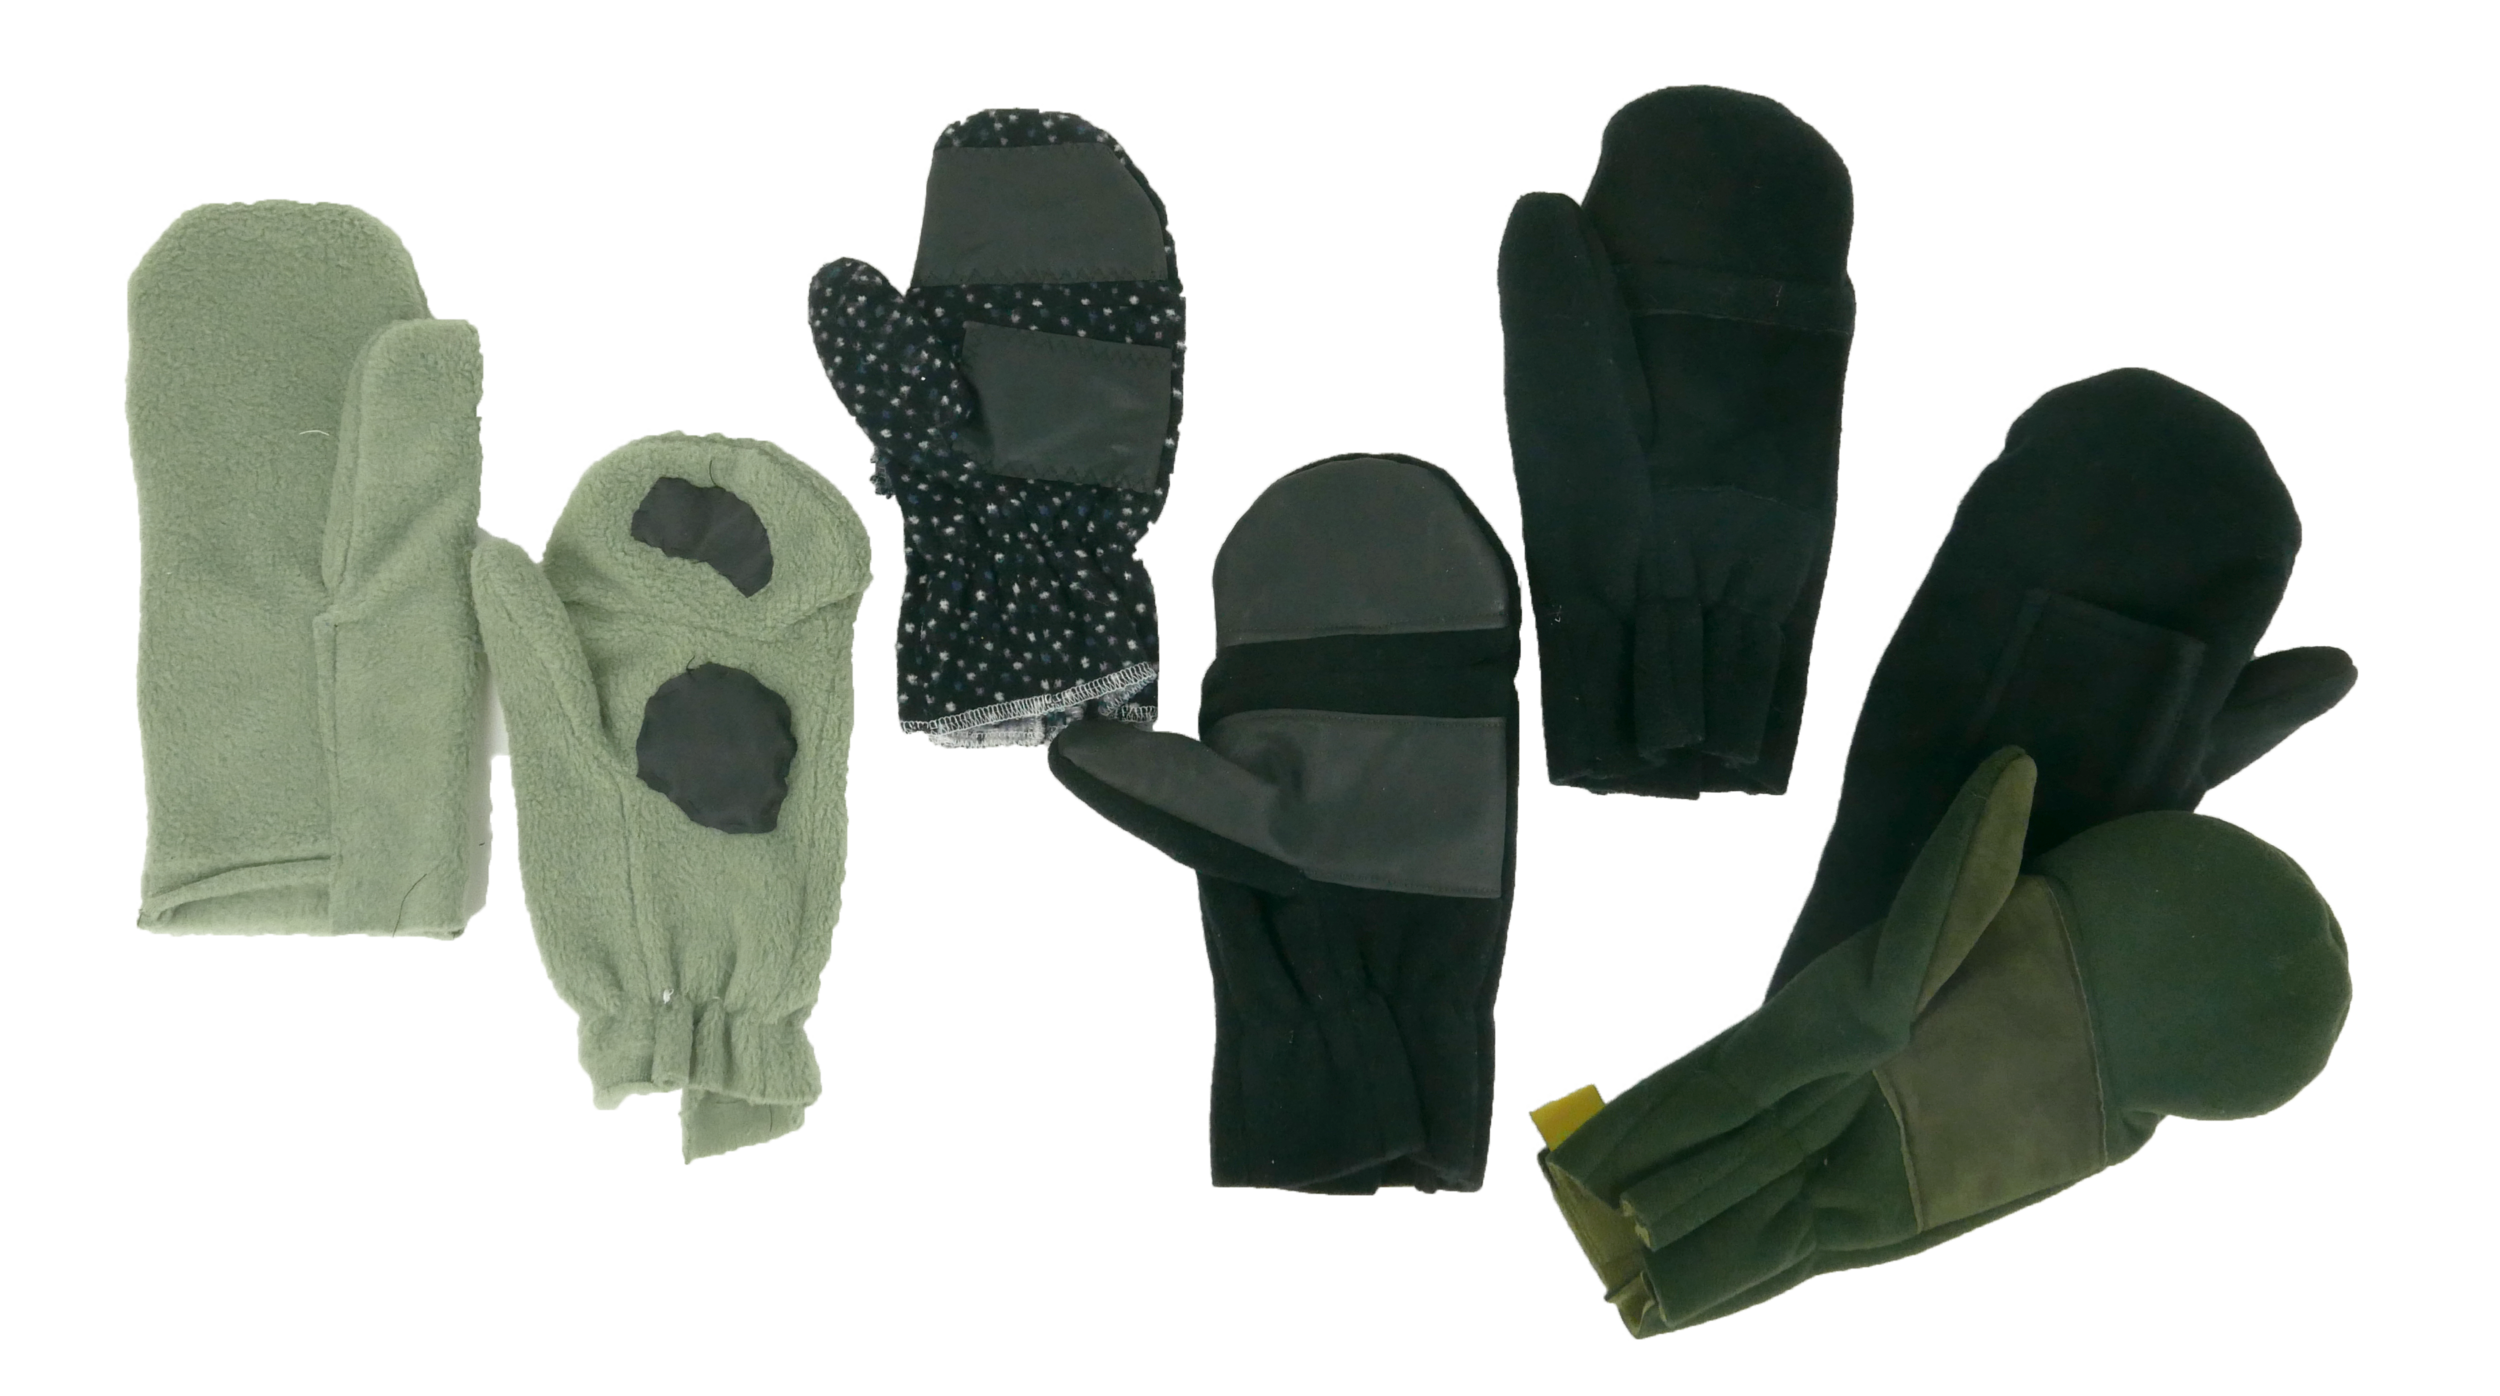 """6 Design Phases - The material is top quality fleece. It conforms with the hand. I removed the excess bulk. There's a suede palm patch for grip and one of the best things about these is they're 100 percent wind resistant, so you don't feel any cold,"""" Loffredo said."""